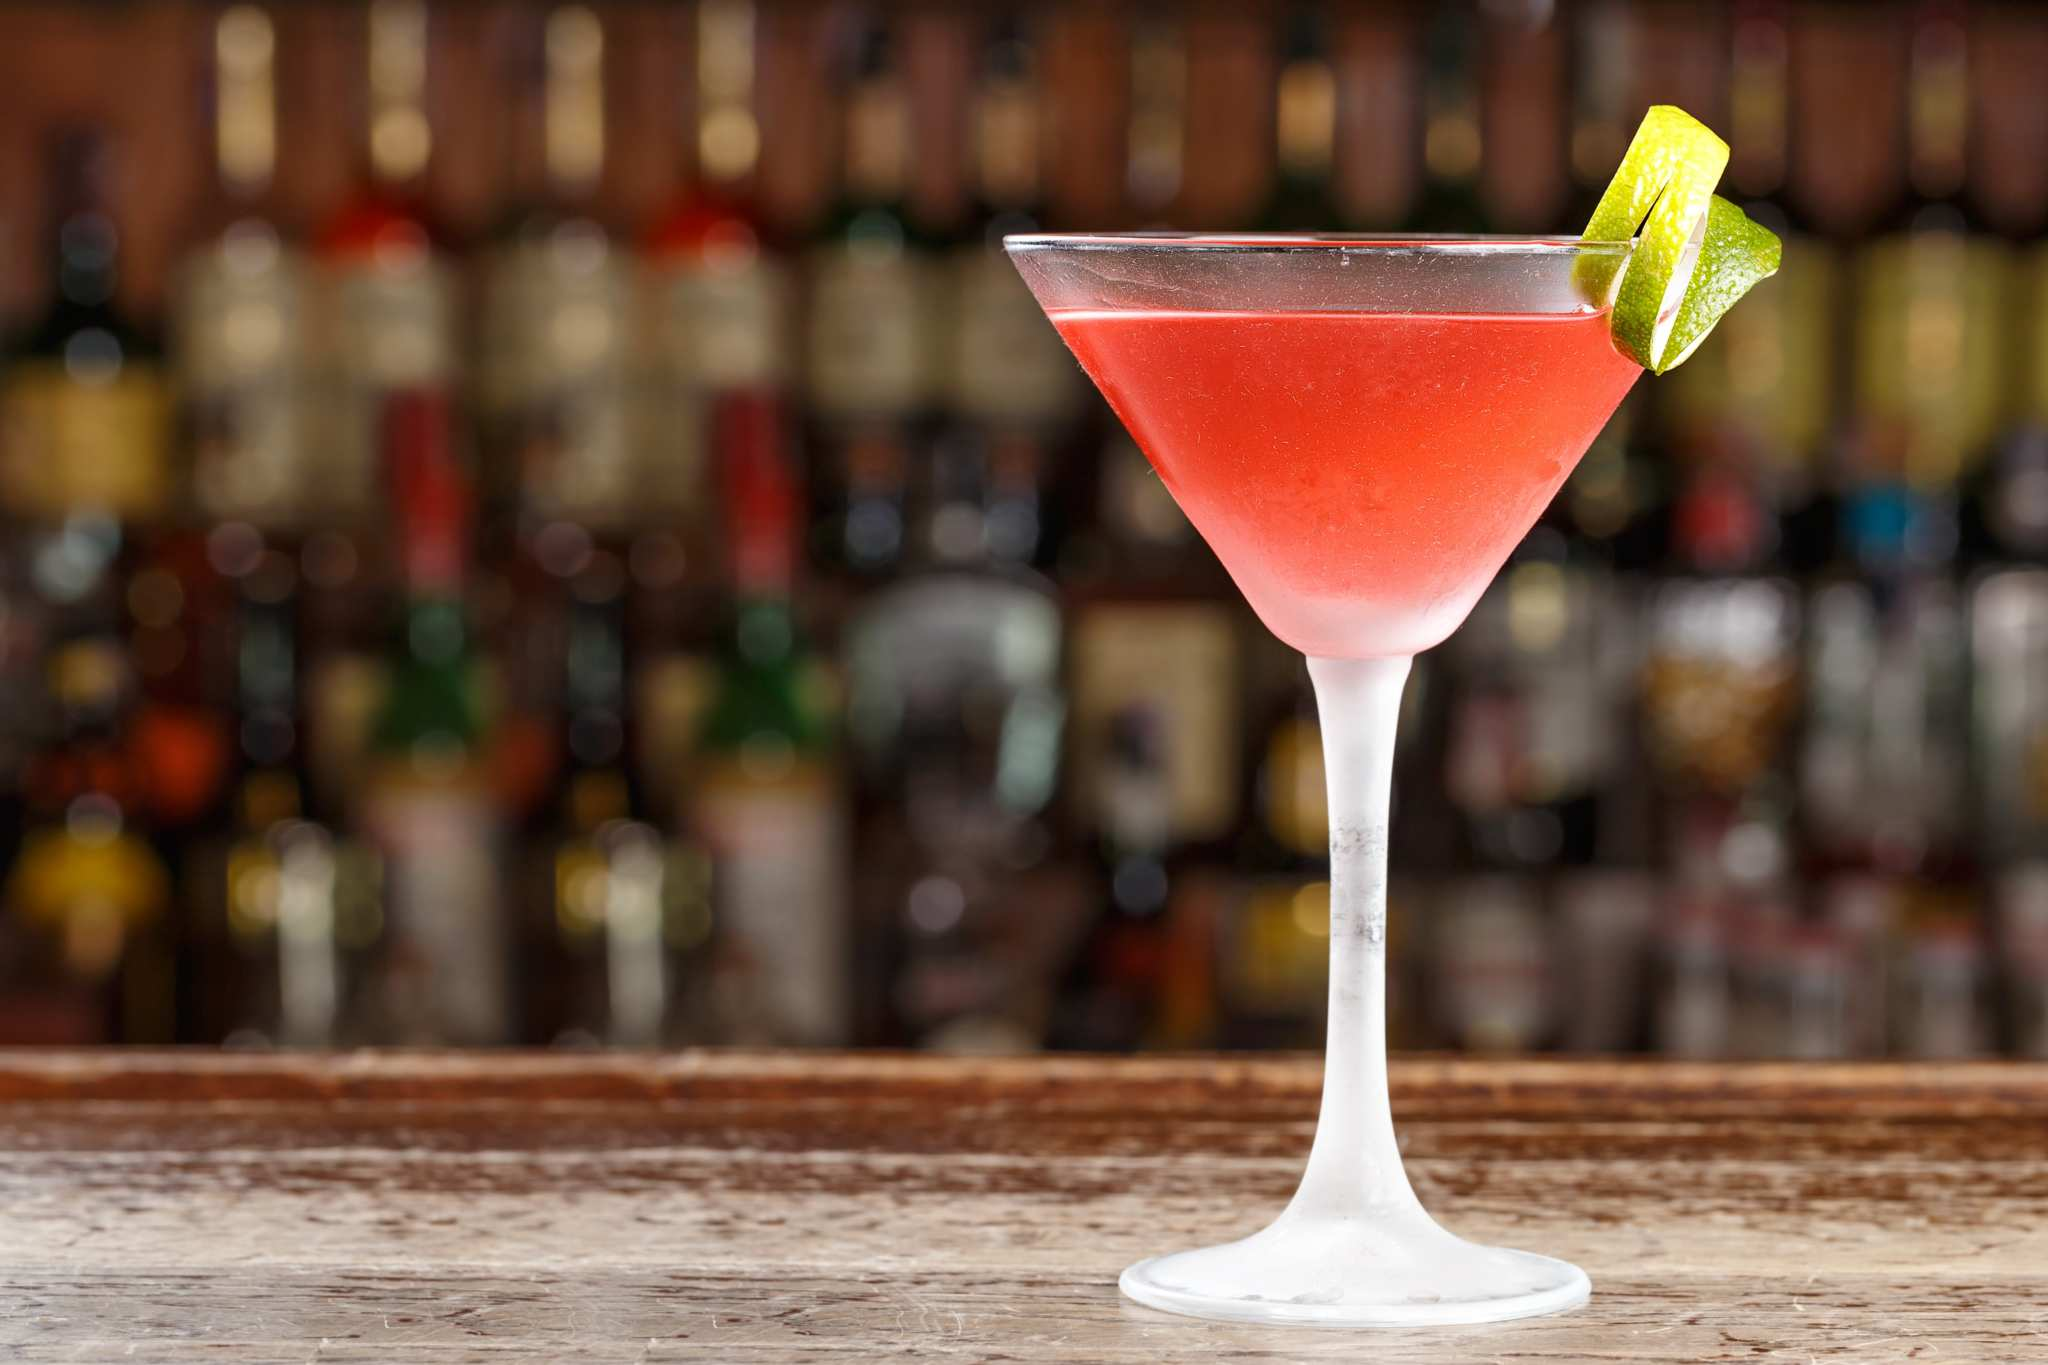 You can start with our CBD-infused Cosmo recipe, but don't be afraid to experiment. The potential of CBD cocktails is nearly endless. A red cocktail in a martini glass, garnished with a lemon peel, sits on a fancy bar with shelves of alcohol in the background.